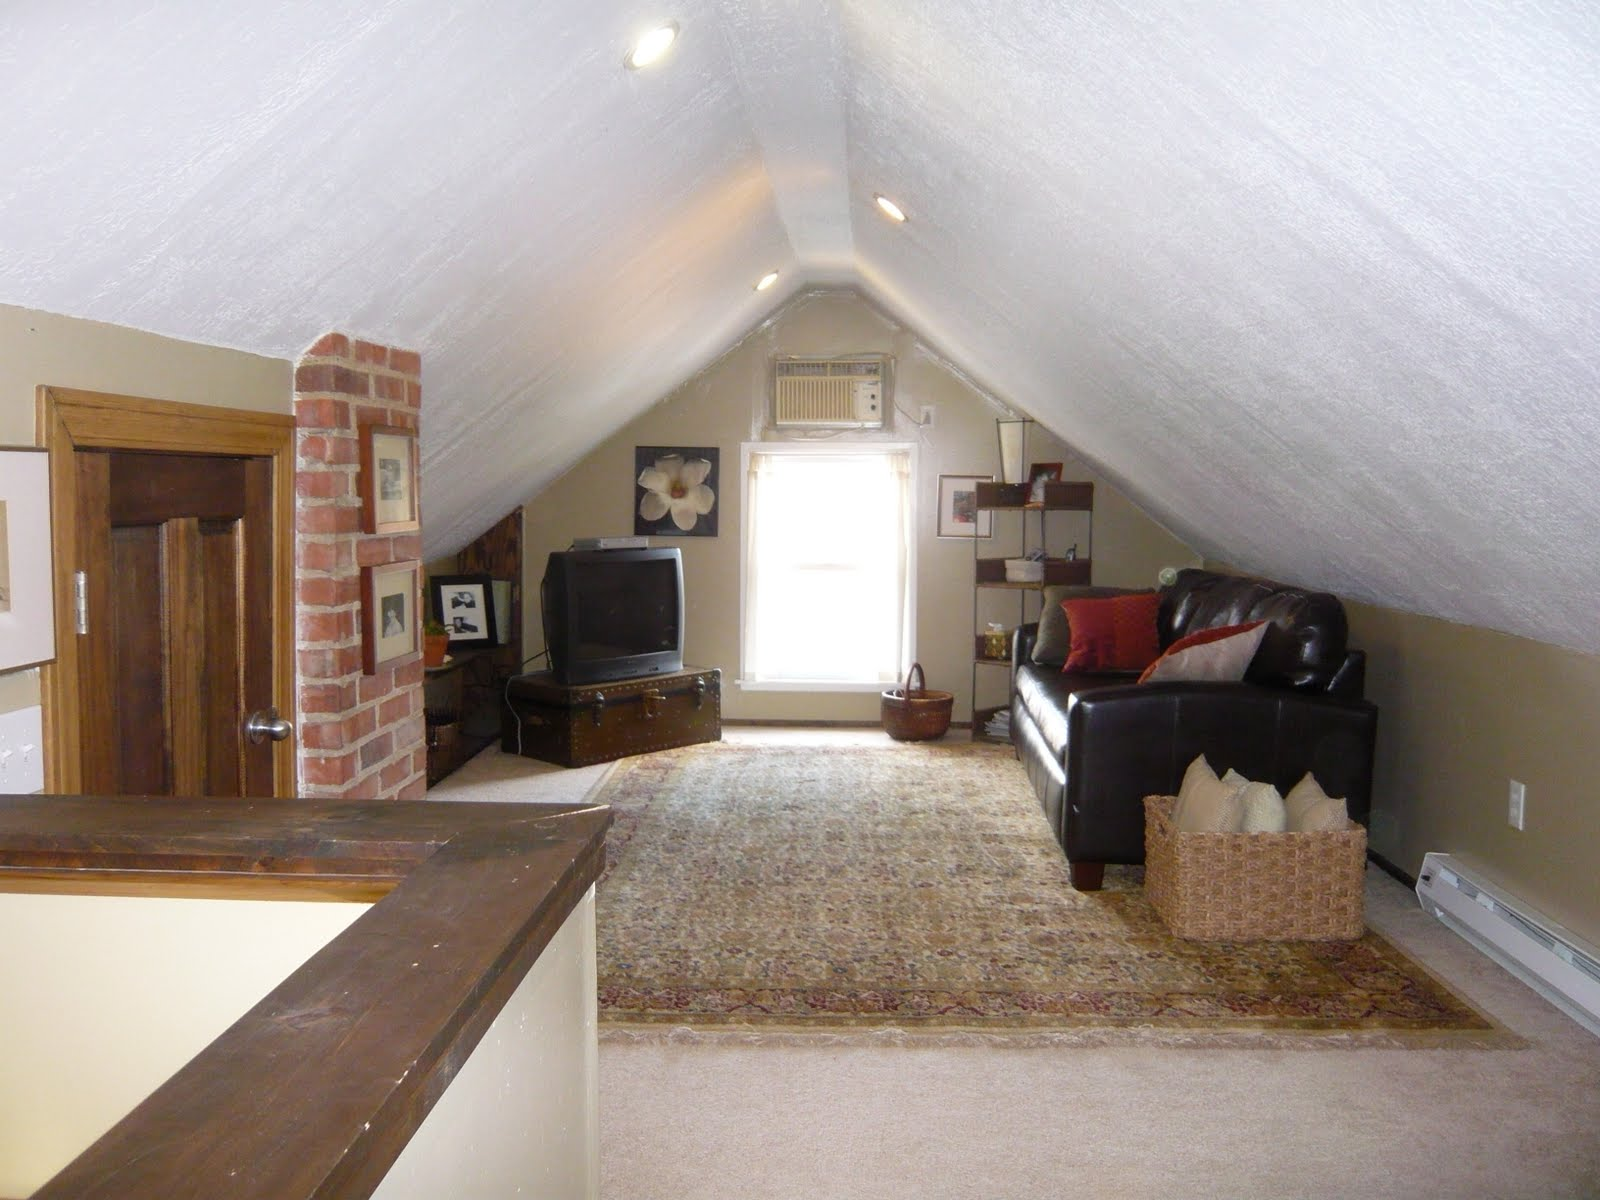 slanted attic bedroom ideas - 1052 Rushleigh Rd Finished attic 4th room with storage